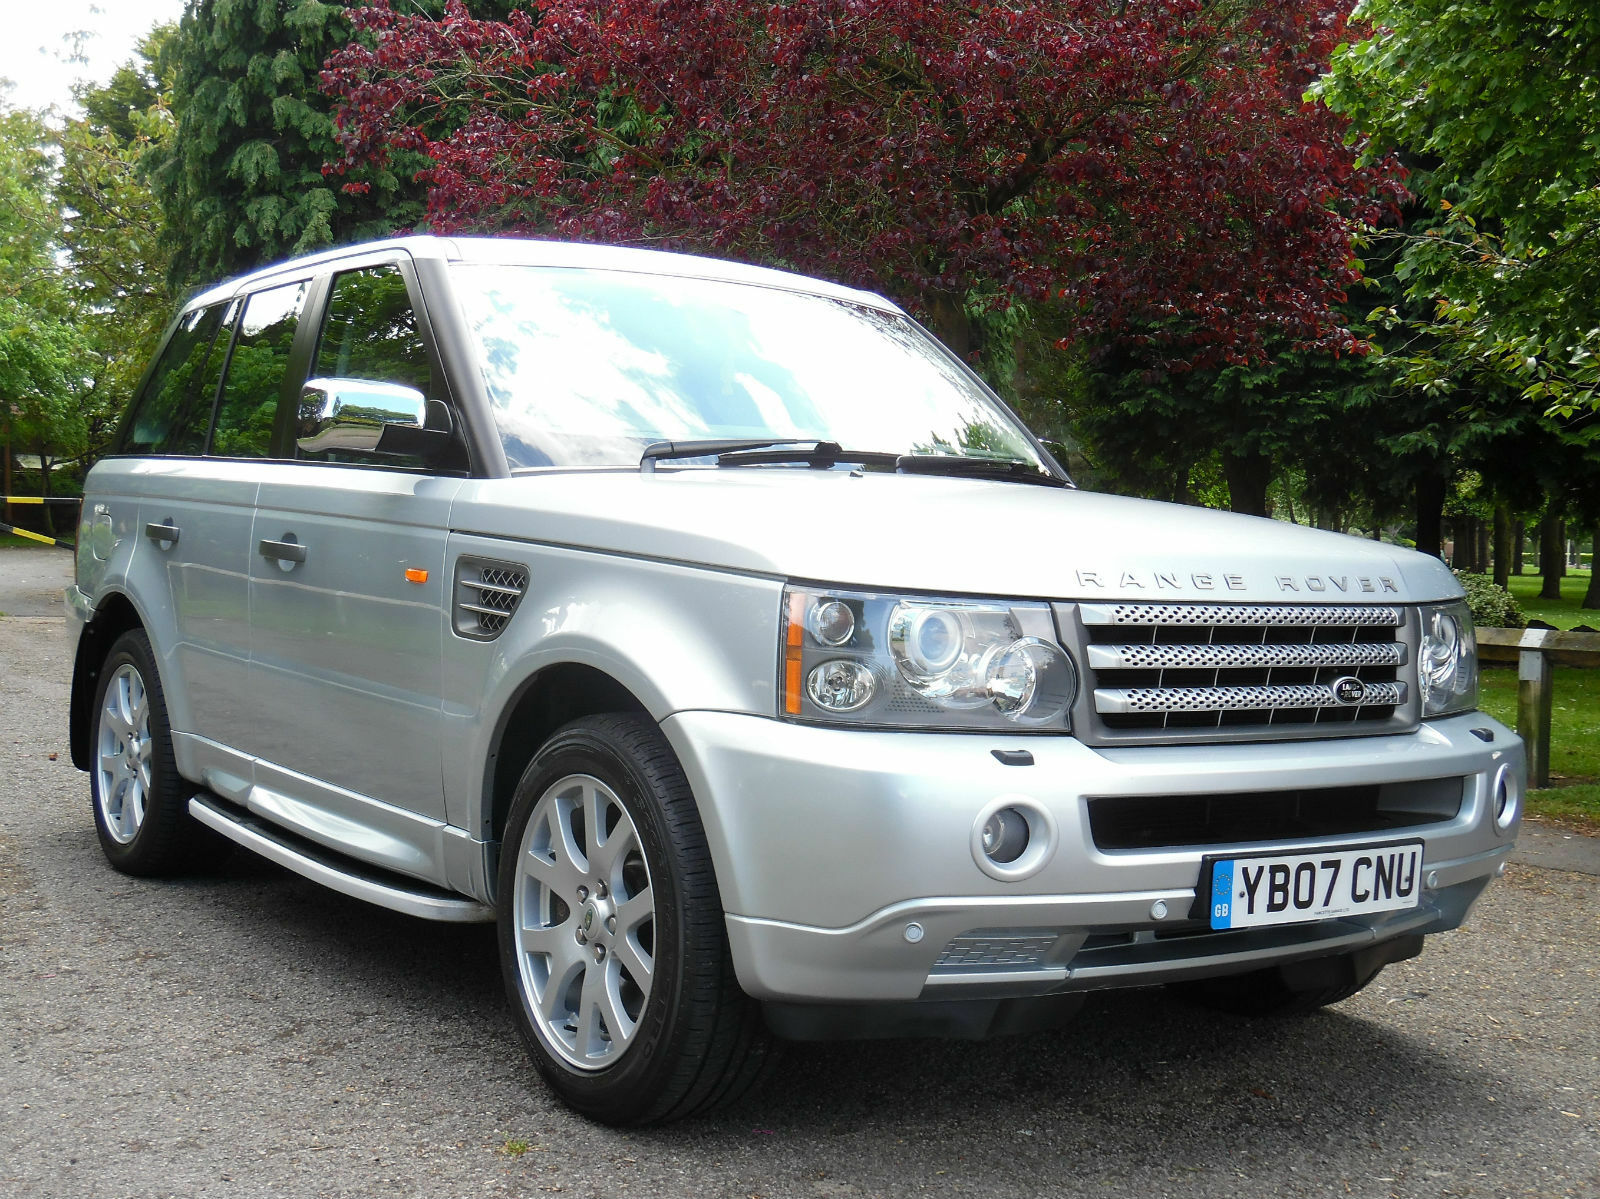 2007 land rover range rover sport 2 7 hse tdv6 auto 80 000 miles f s h 9 picclick uk. Black Bedroom Furniture Sets. Home Design Ideas